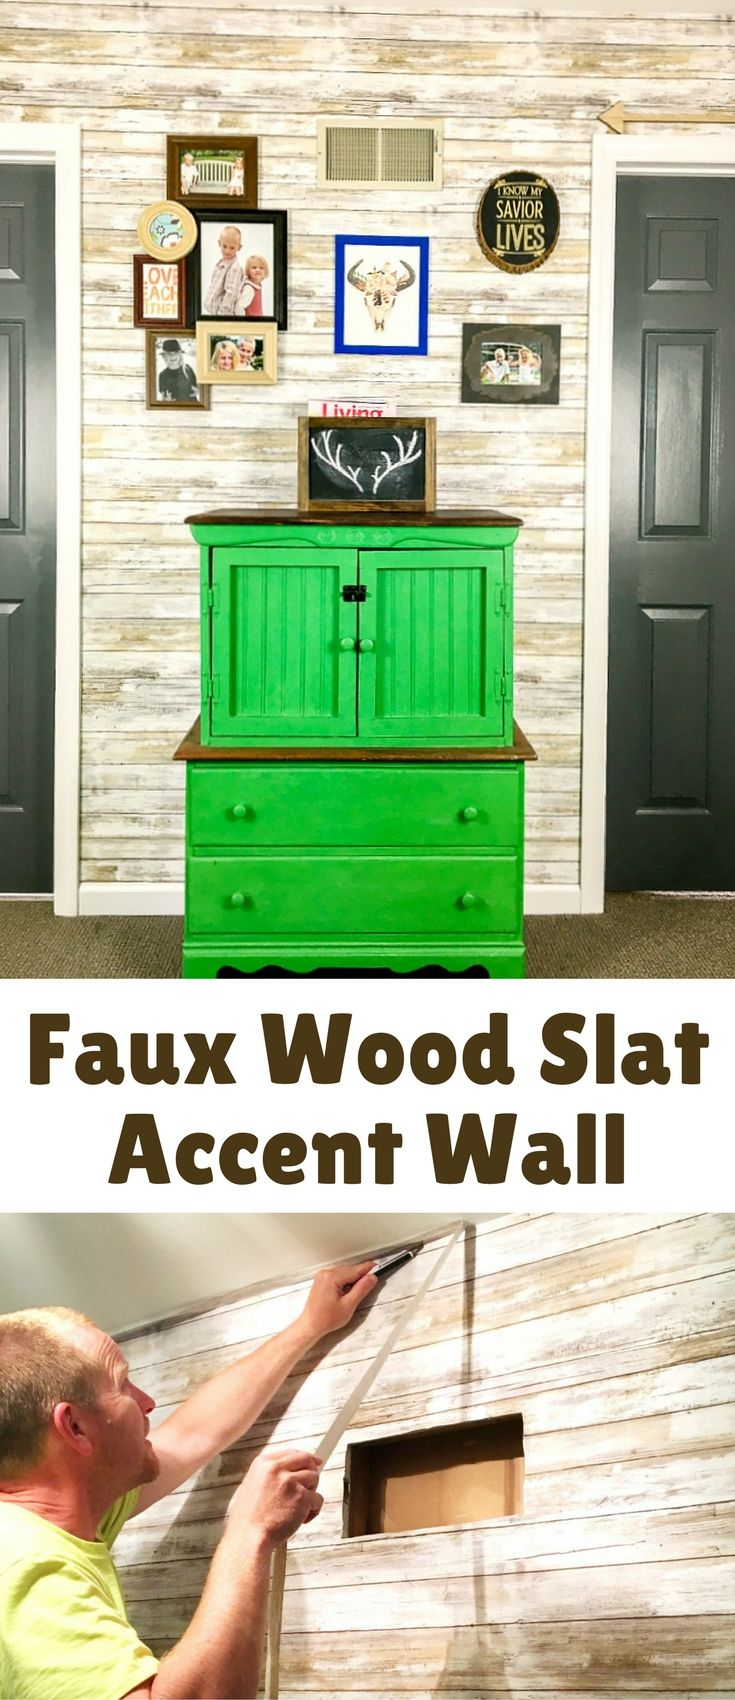 This faux wood slat accent wall is for all Fixer Upper fans who love the rustic ...